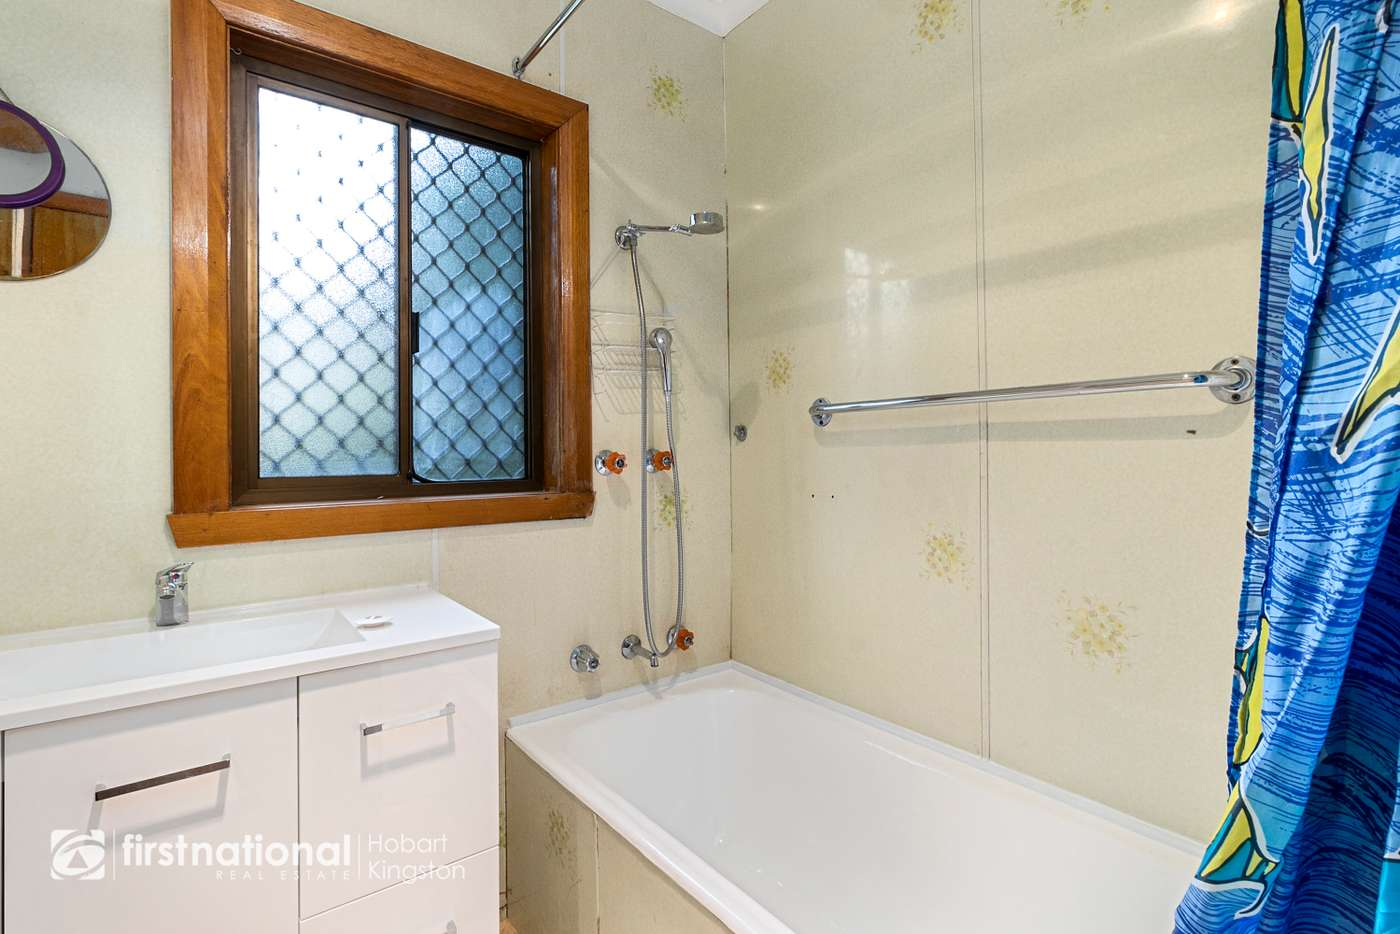 Sixth view of Homely house listing, 10 Fourth Avenue, West Moonah TAS 7009